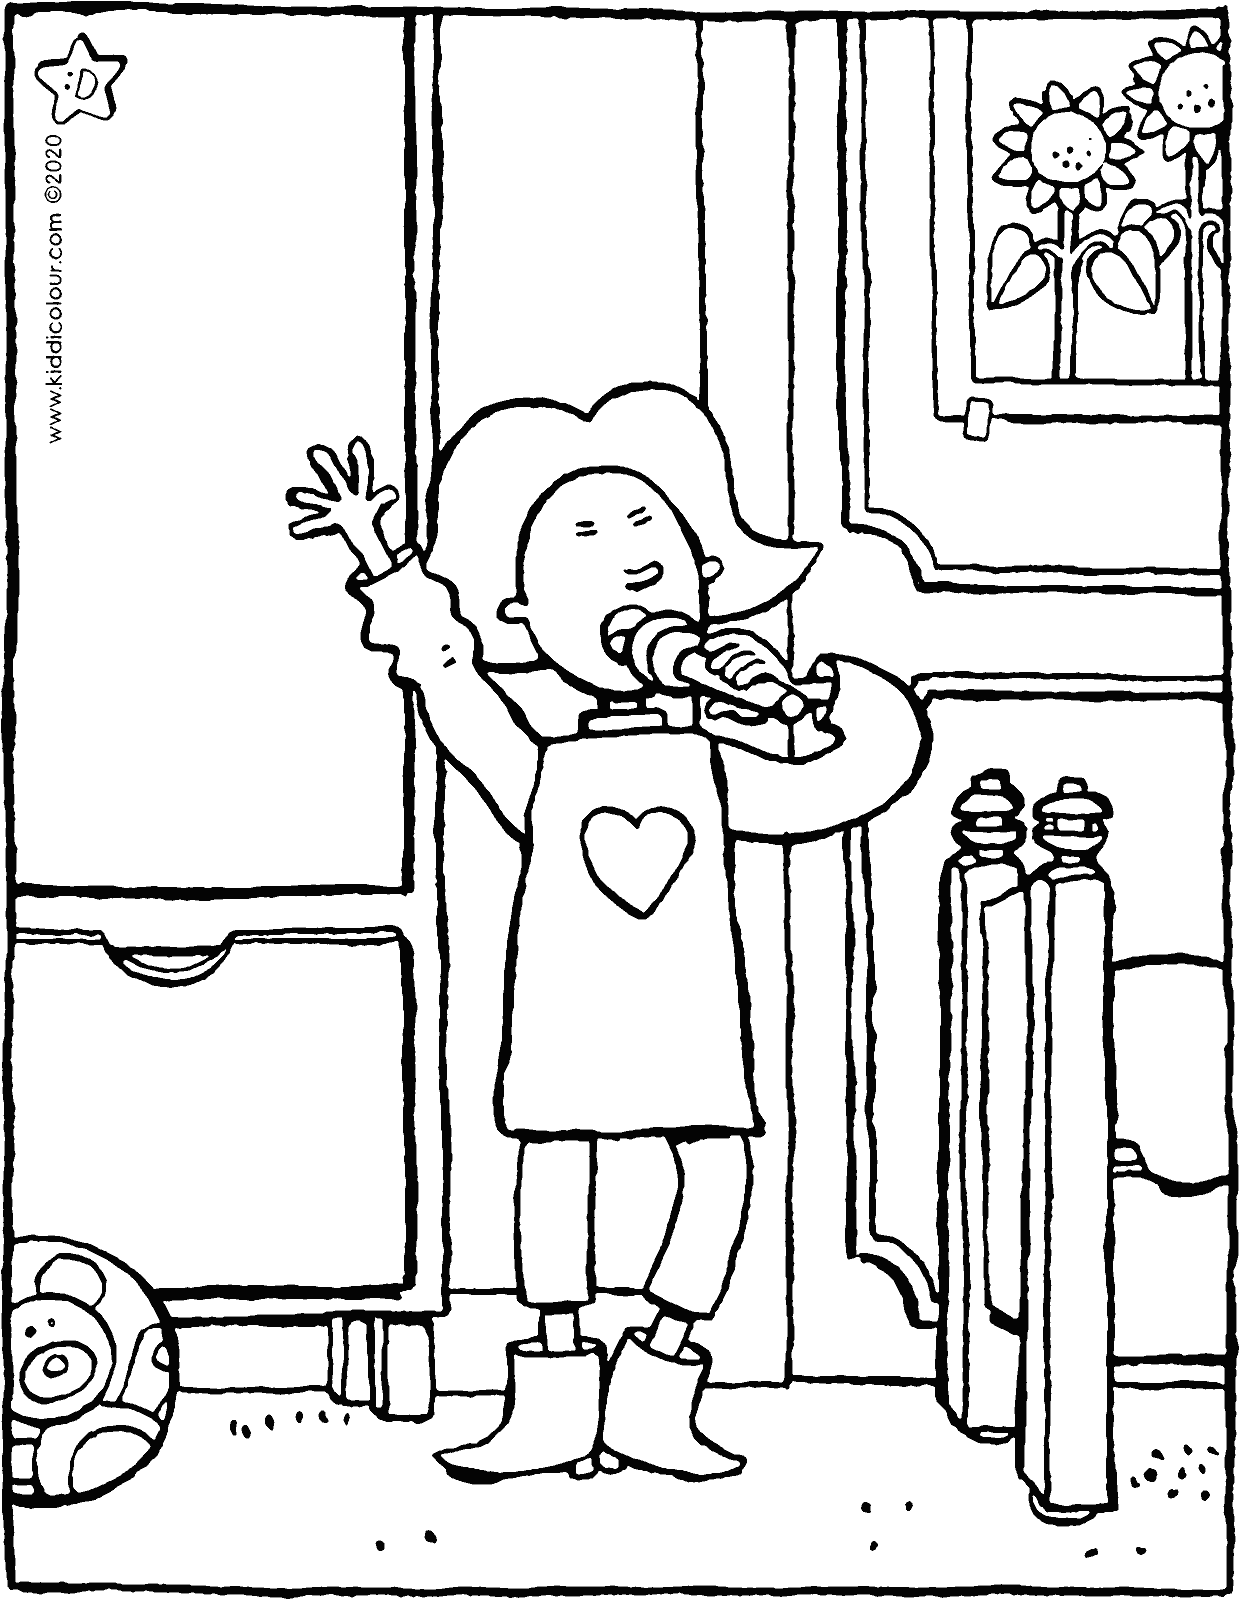 Emma singing in the bedroom colouring page drawing picture 01V